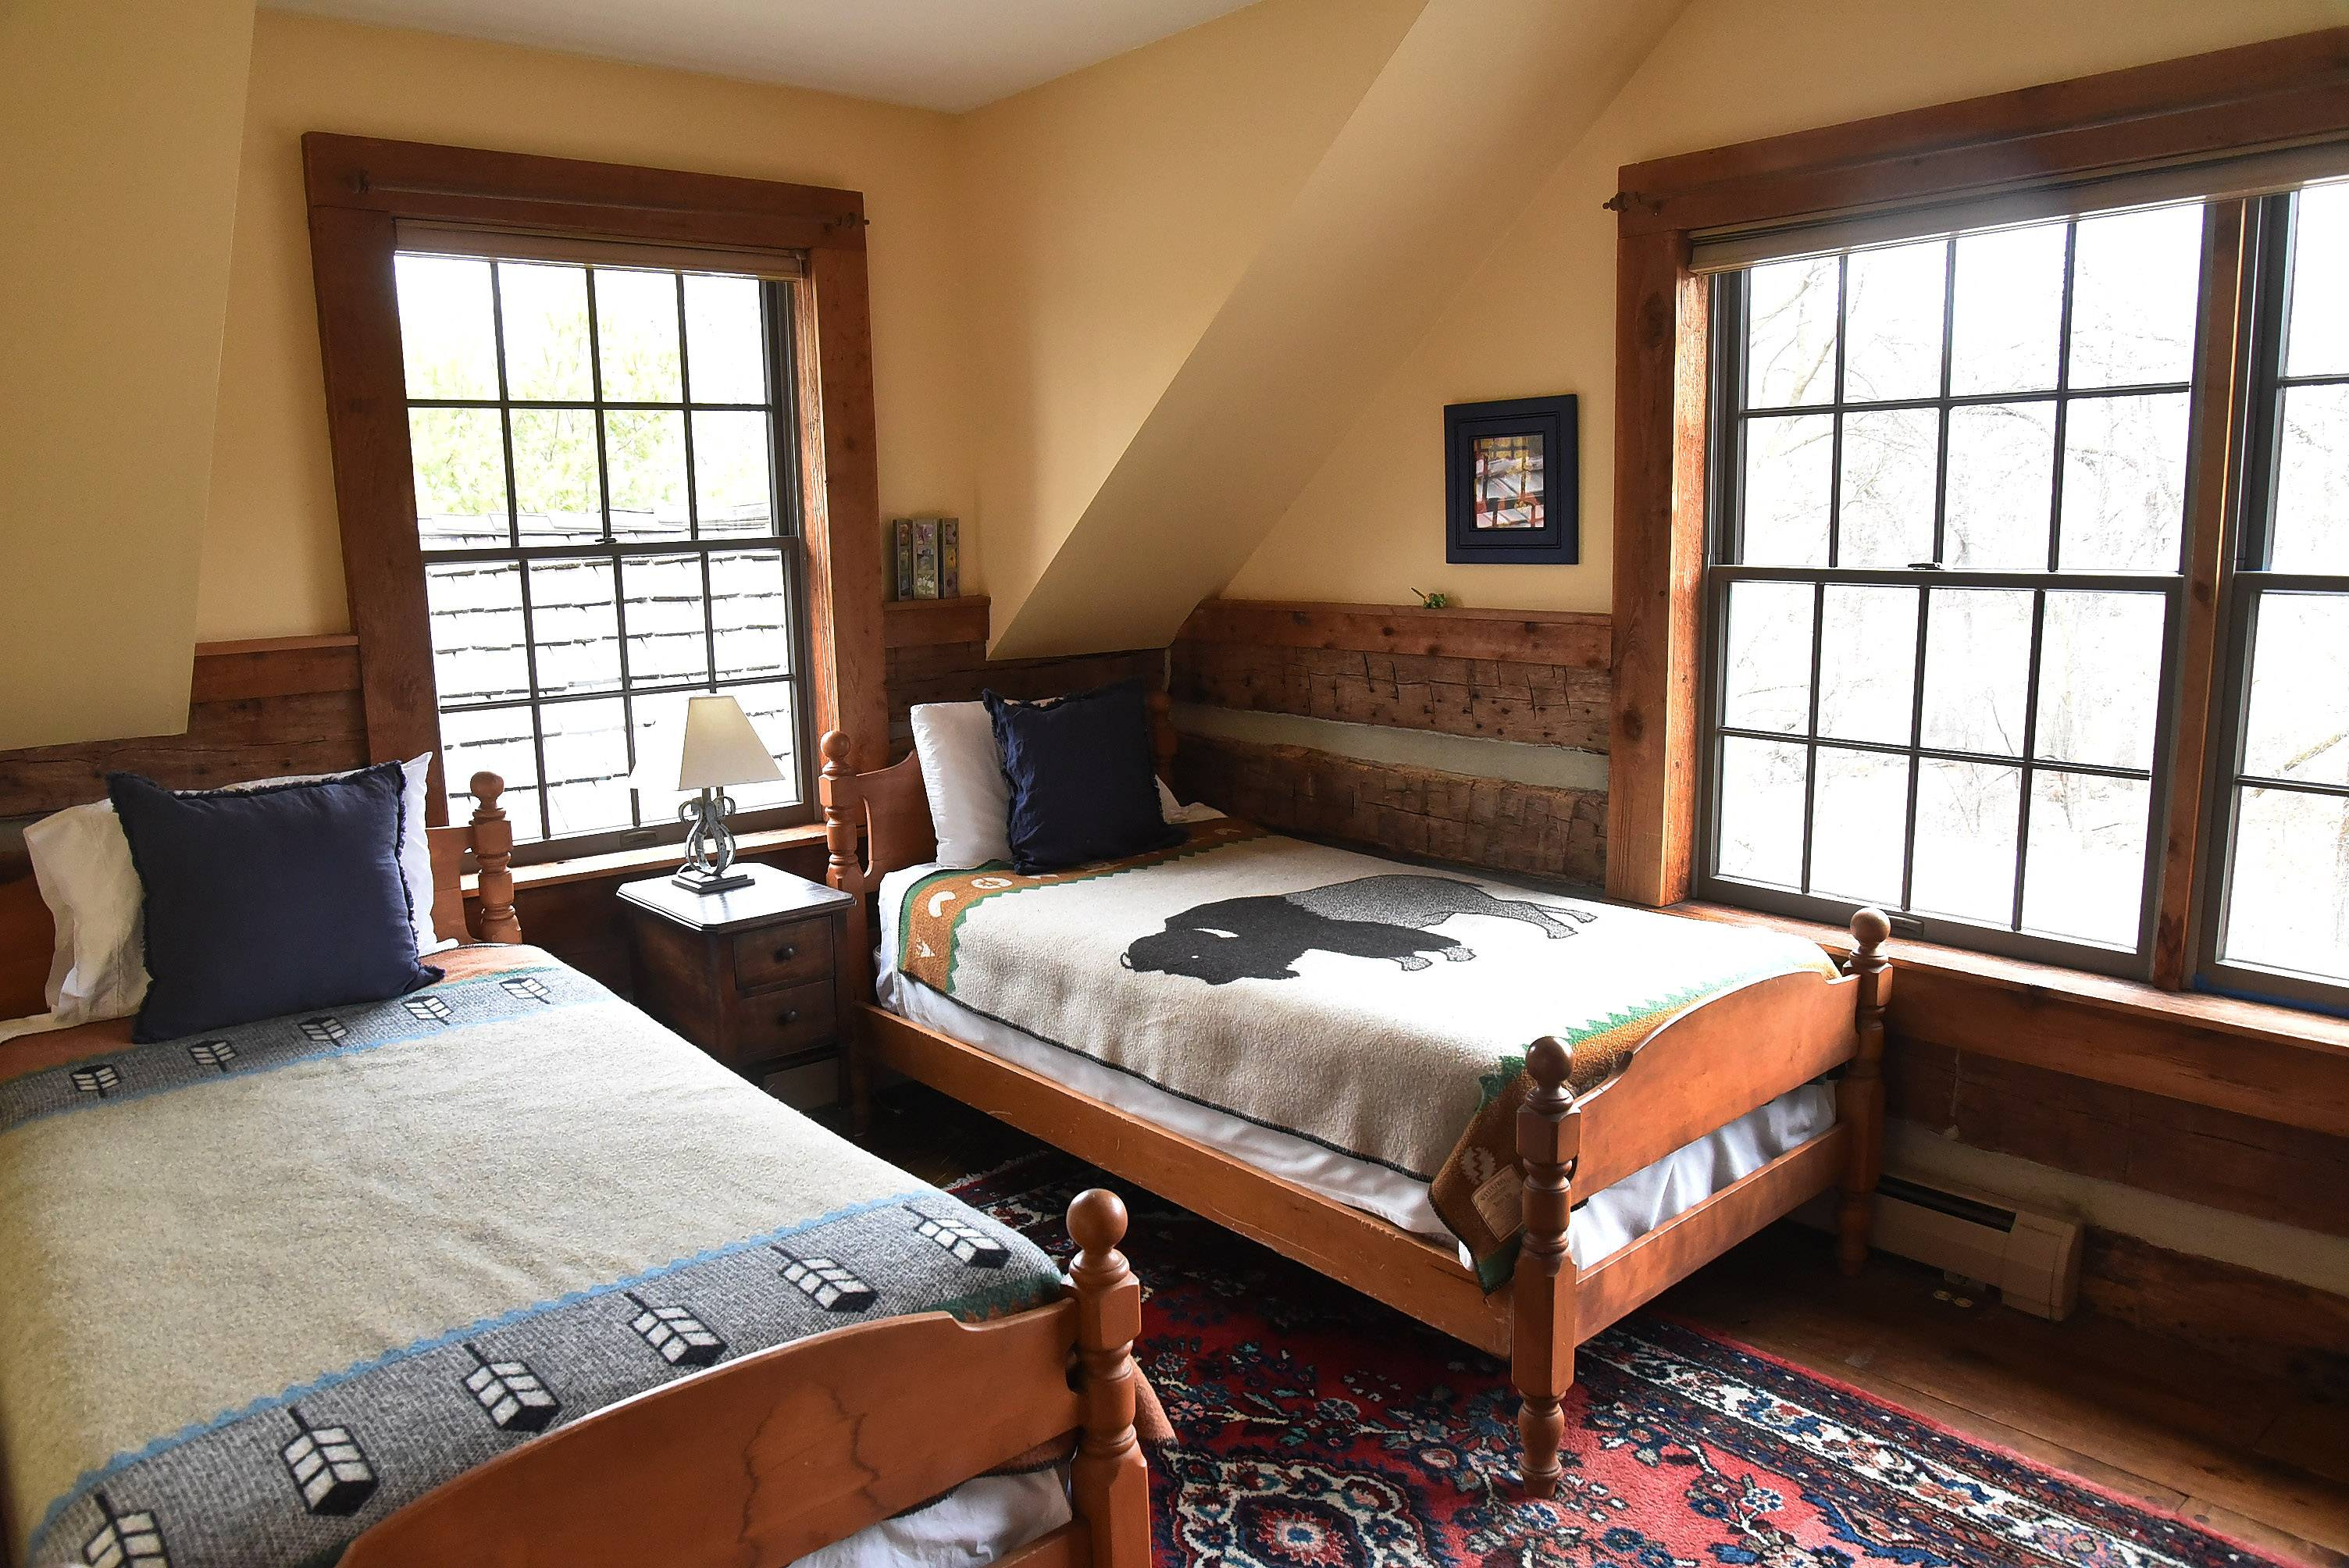 One of the bedrooms in Kevin and Laurie Sherman's log cabin in Barrington Hills.